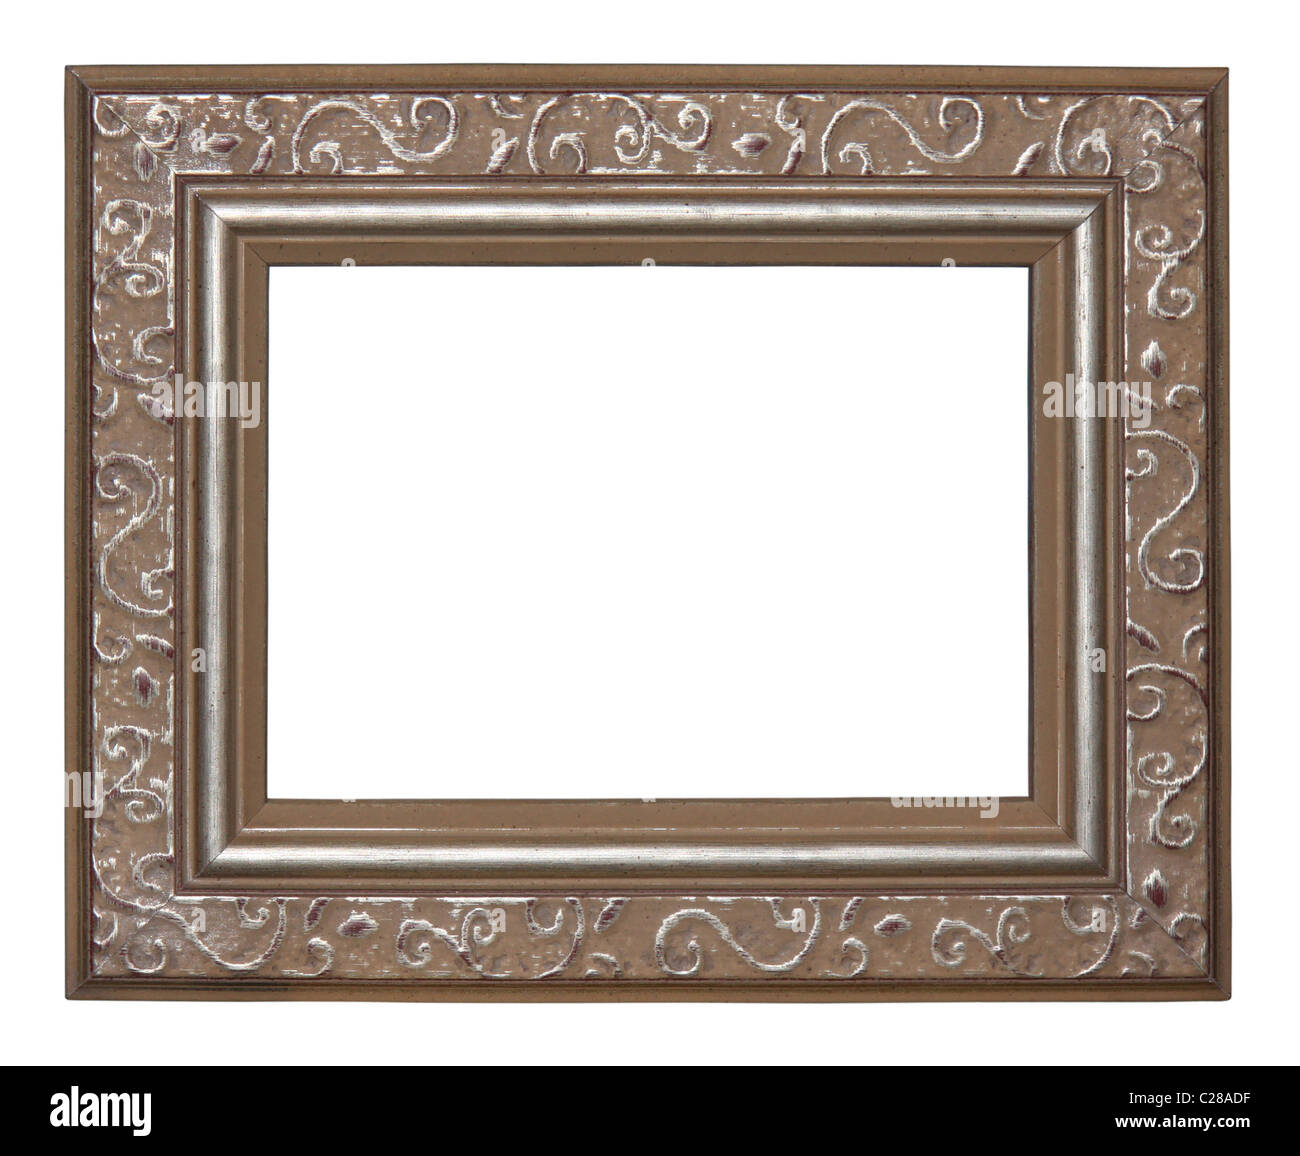 Painting Frame Cut Out Stock Images & Pictures - Alamy